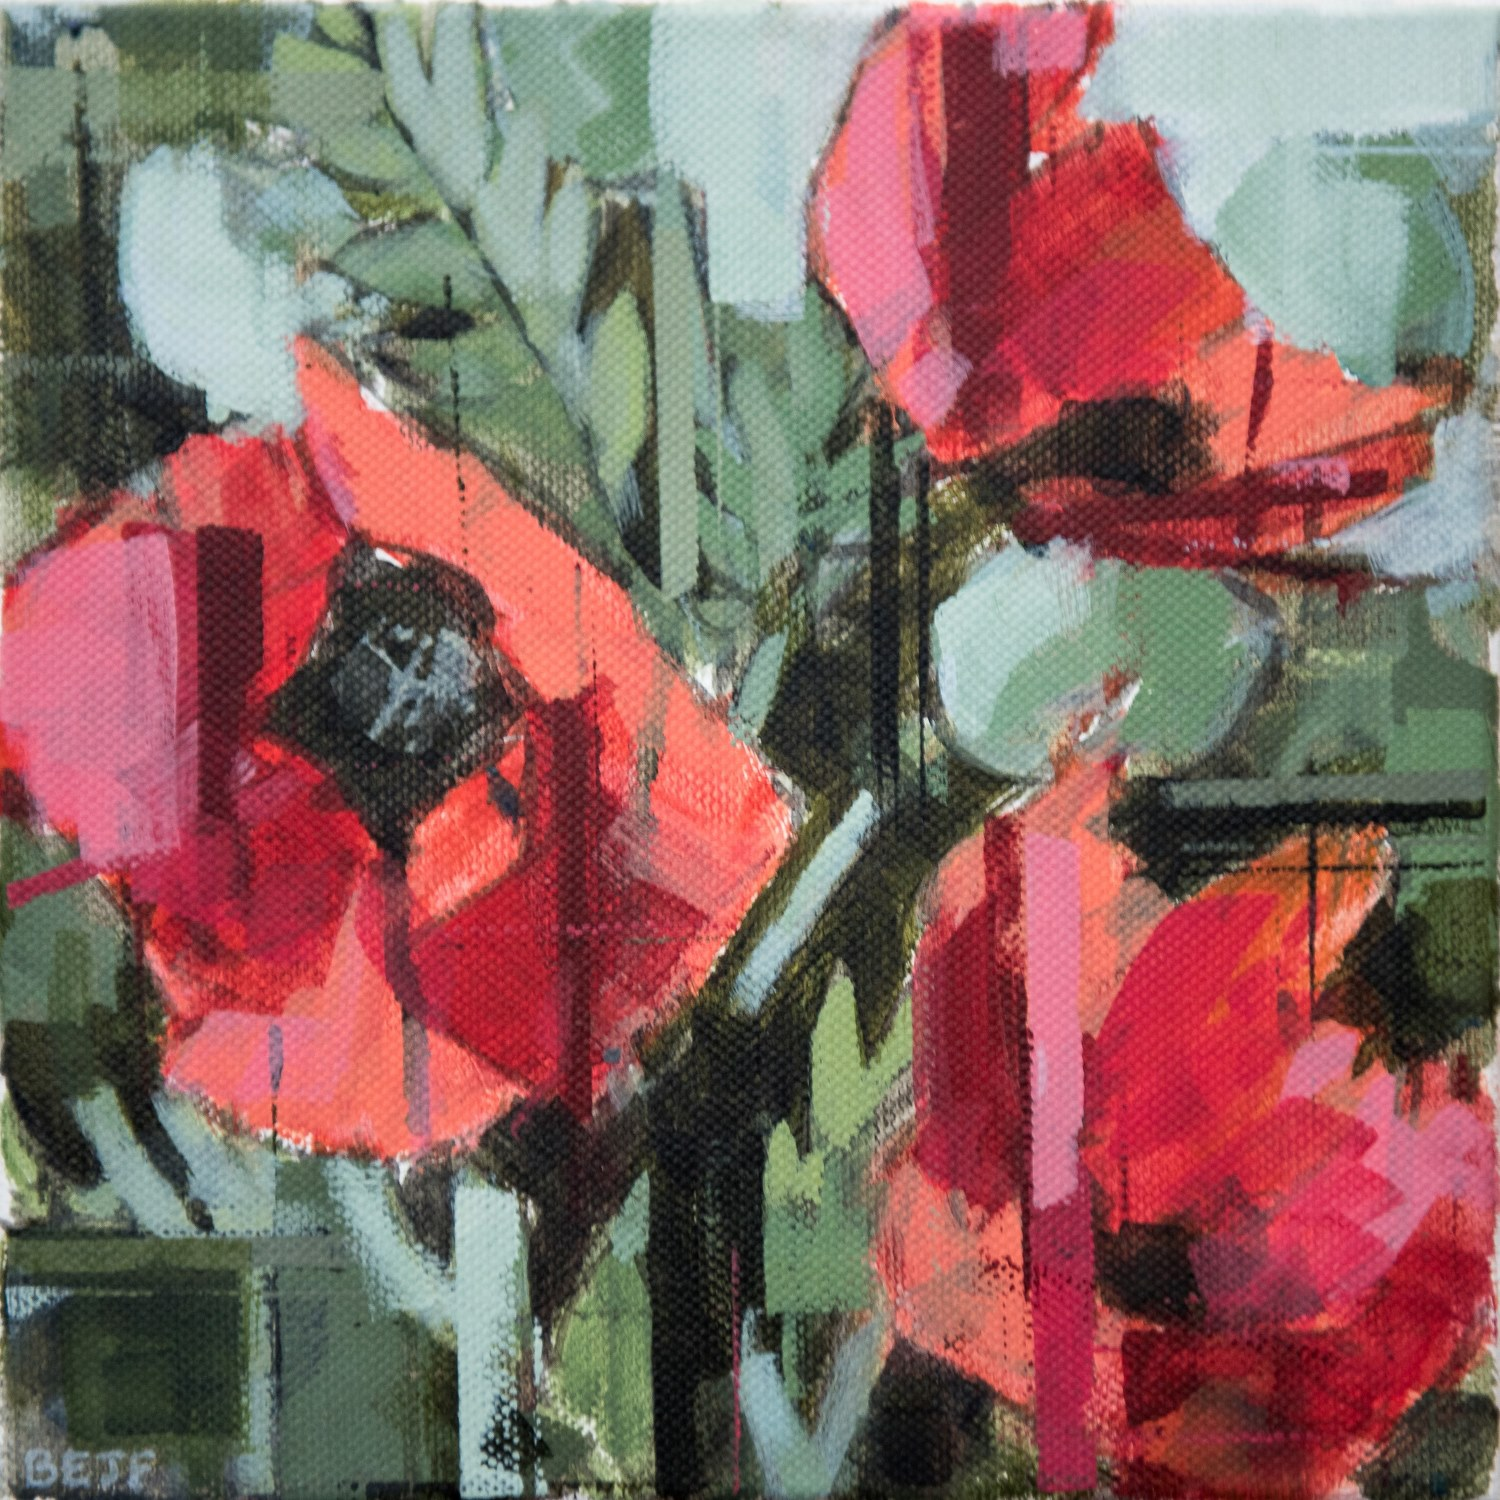 Blood Red Poppies - Bridget Flinn